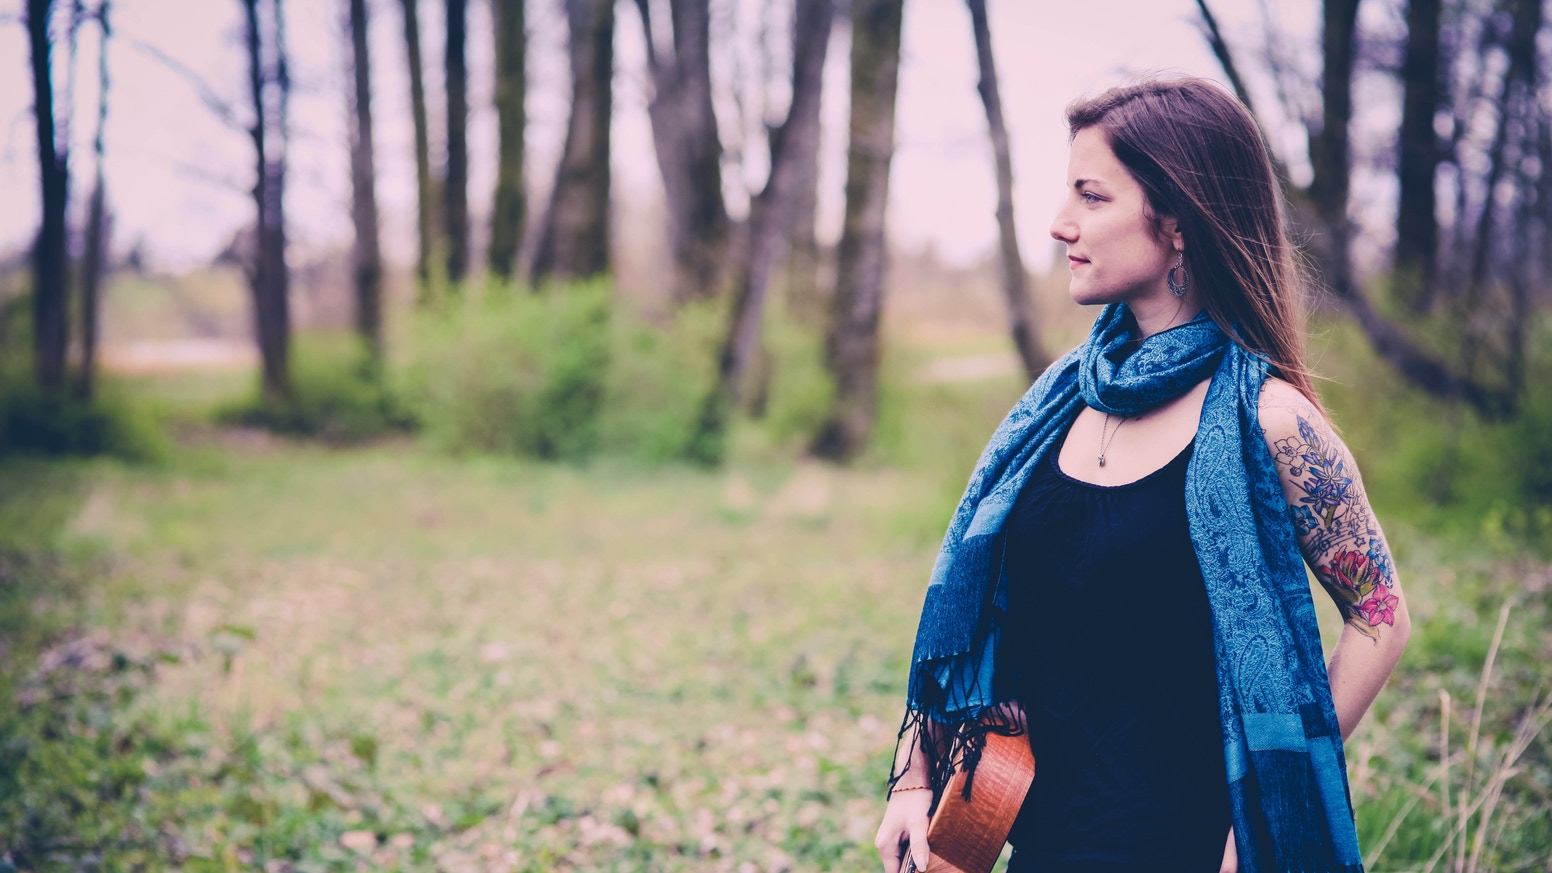 A collection of love, thought, questions, and interpretations will create Allison's third release of 5 acoustic, folk songs.